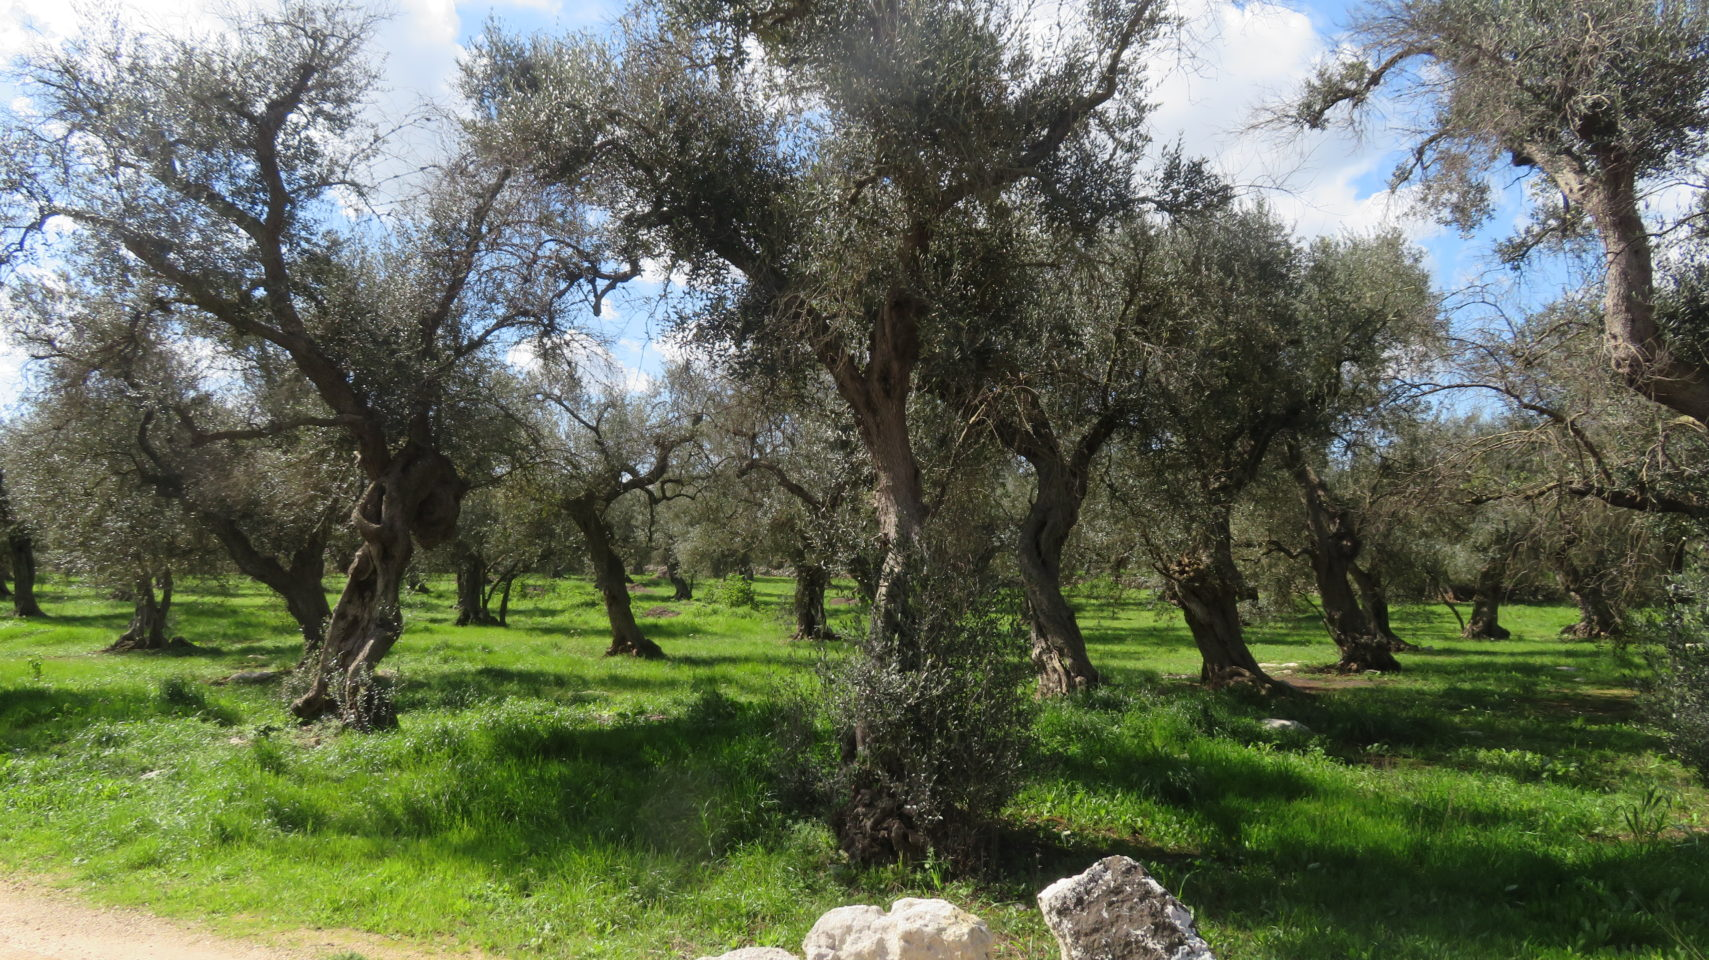 Olive tree groves on each side of the road as far as the eye can see ~ The Wholesome Charms of Salento